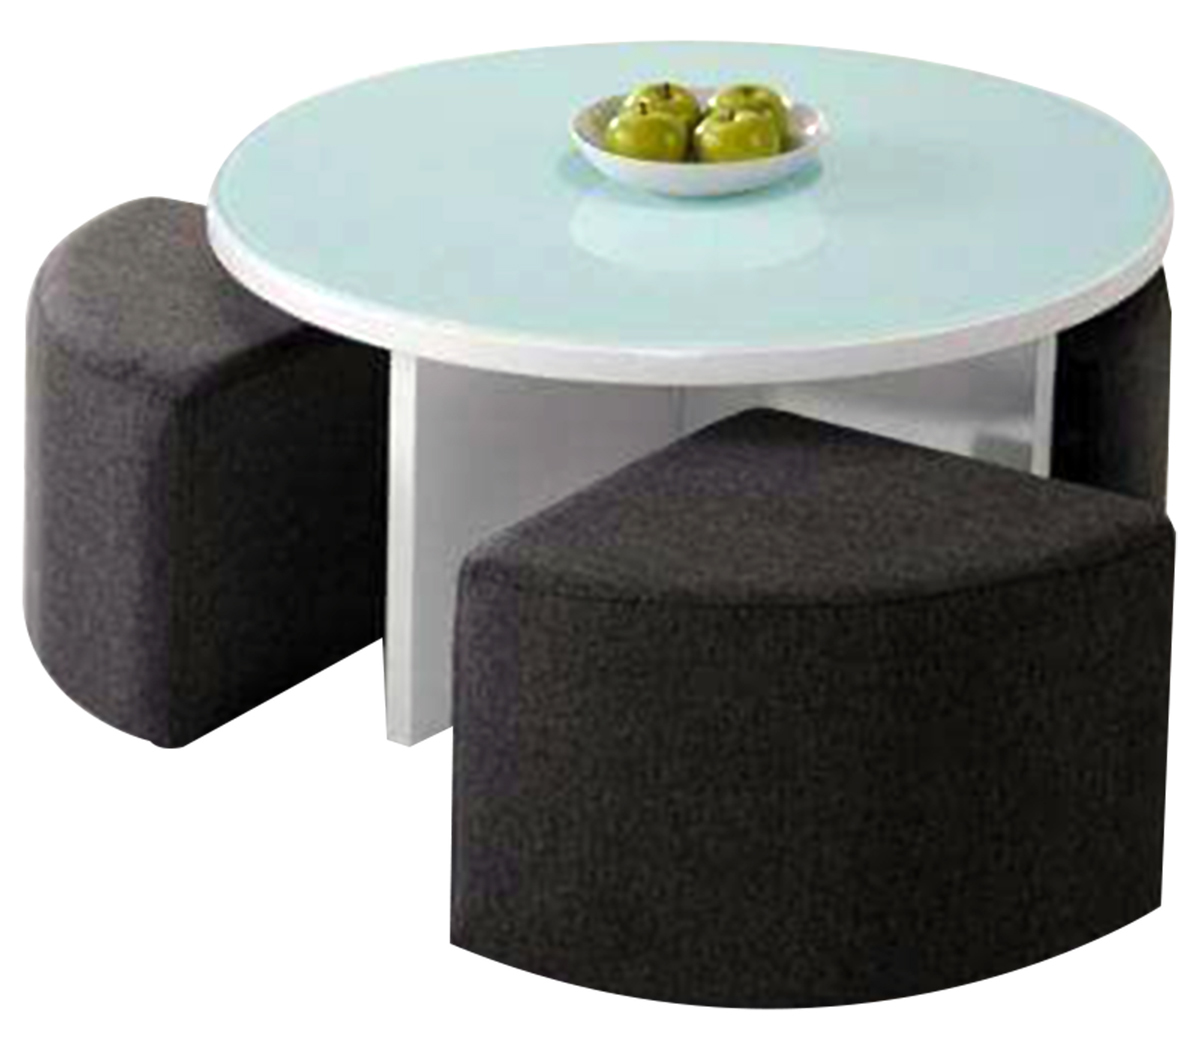 coffee table 5020.jpg